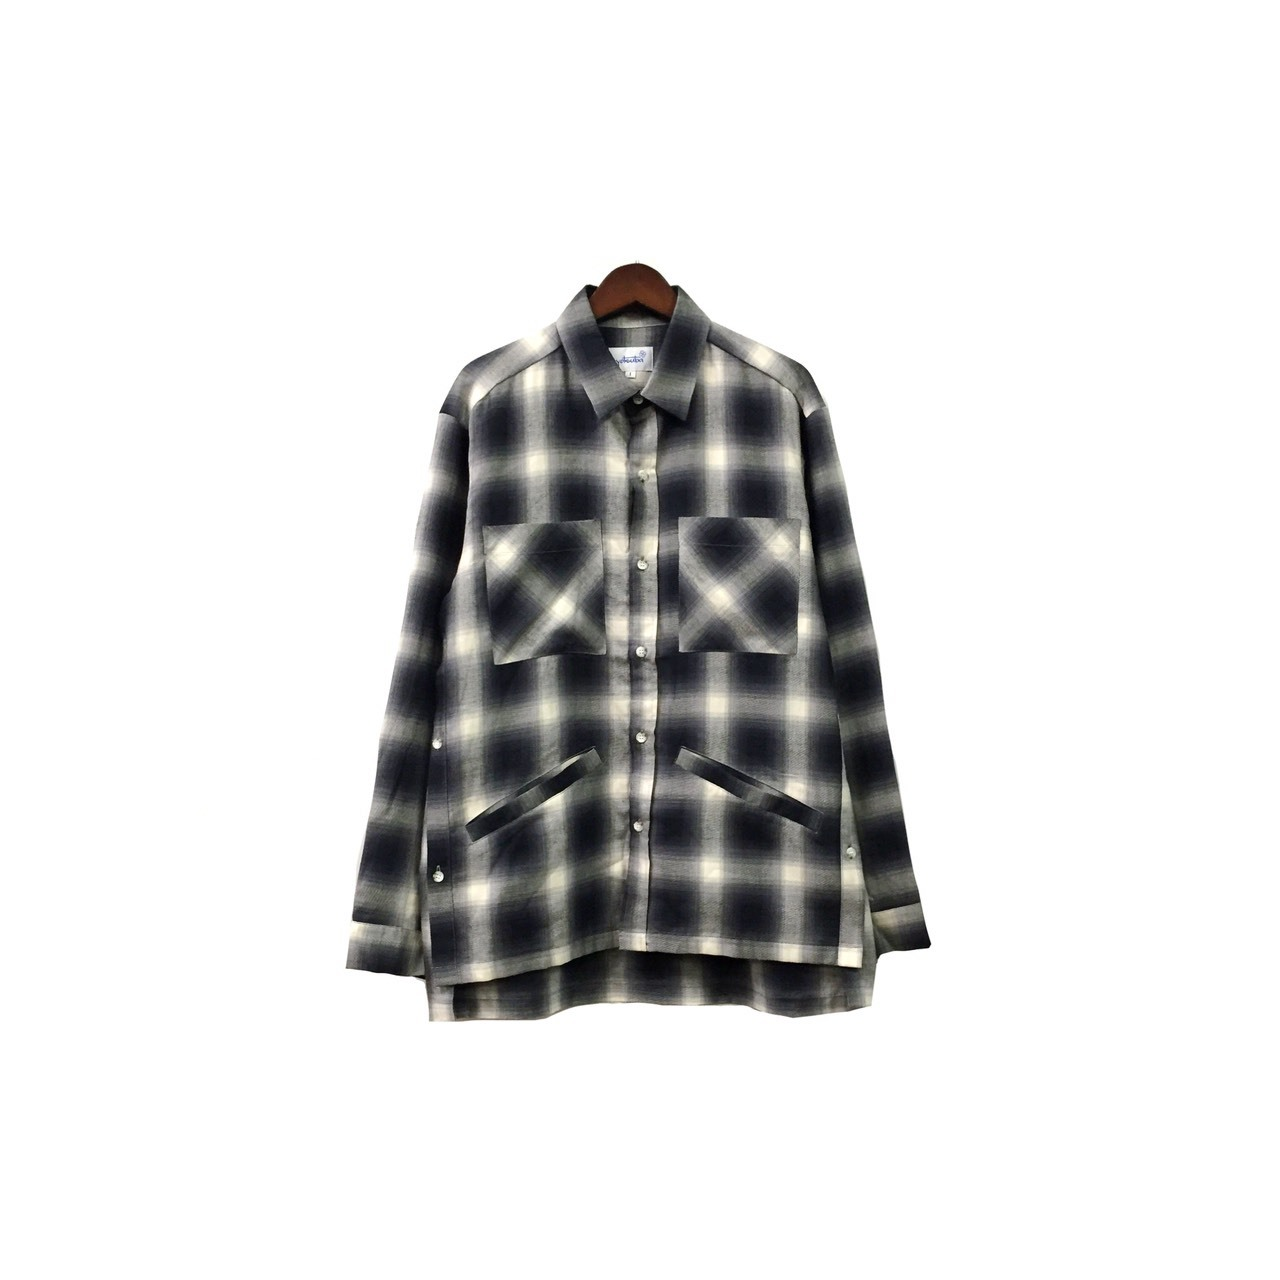 yotsuba - Cotton & Rayon Check Shirt / Black ¥22000+tax